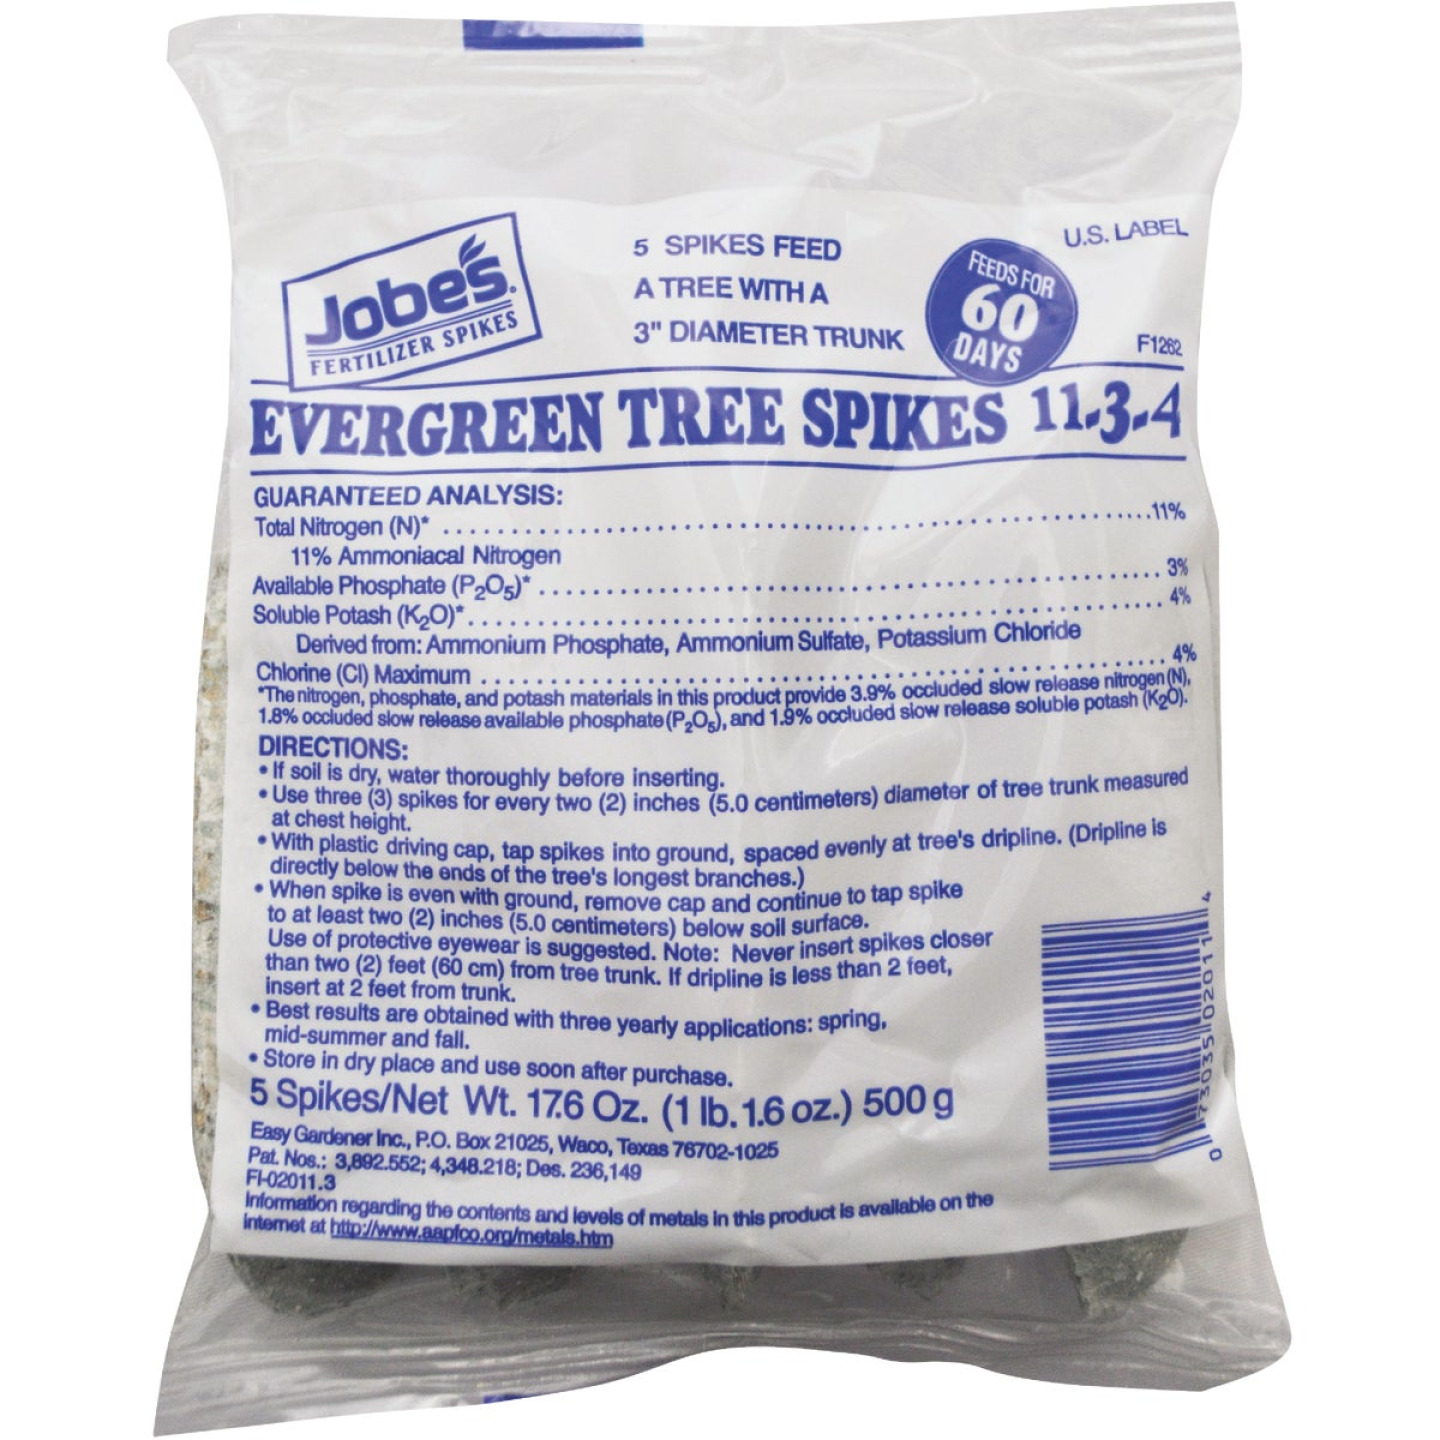 Jobe's 11-3-4 Evergreen Tree Stakes (5-Pack) Image 1